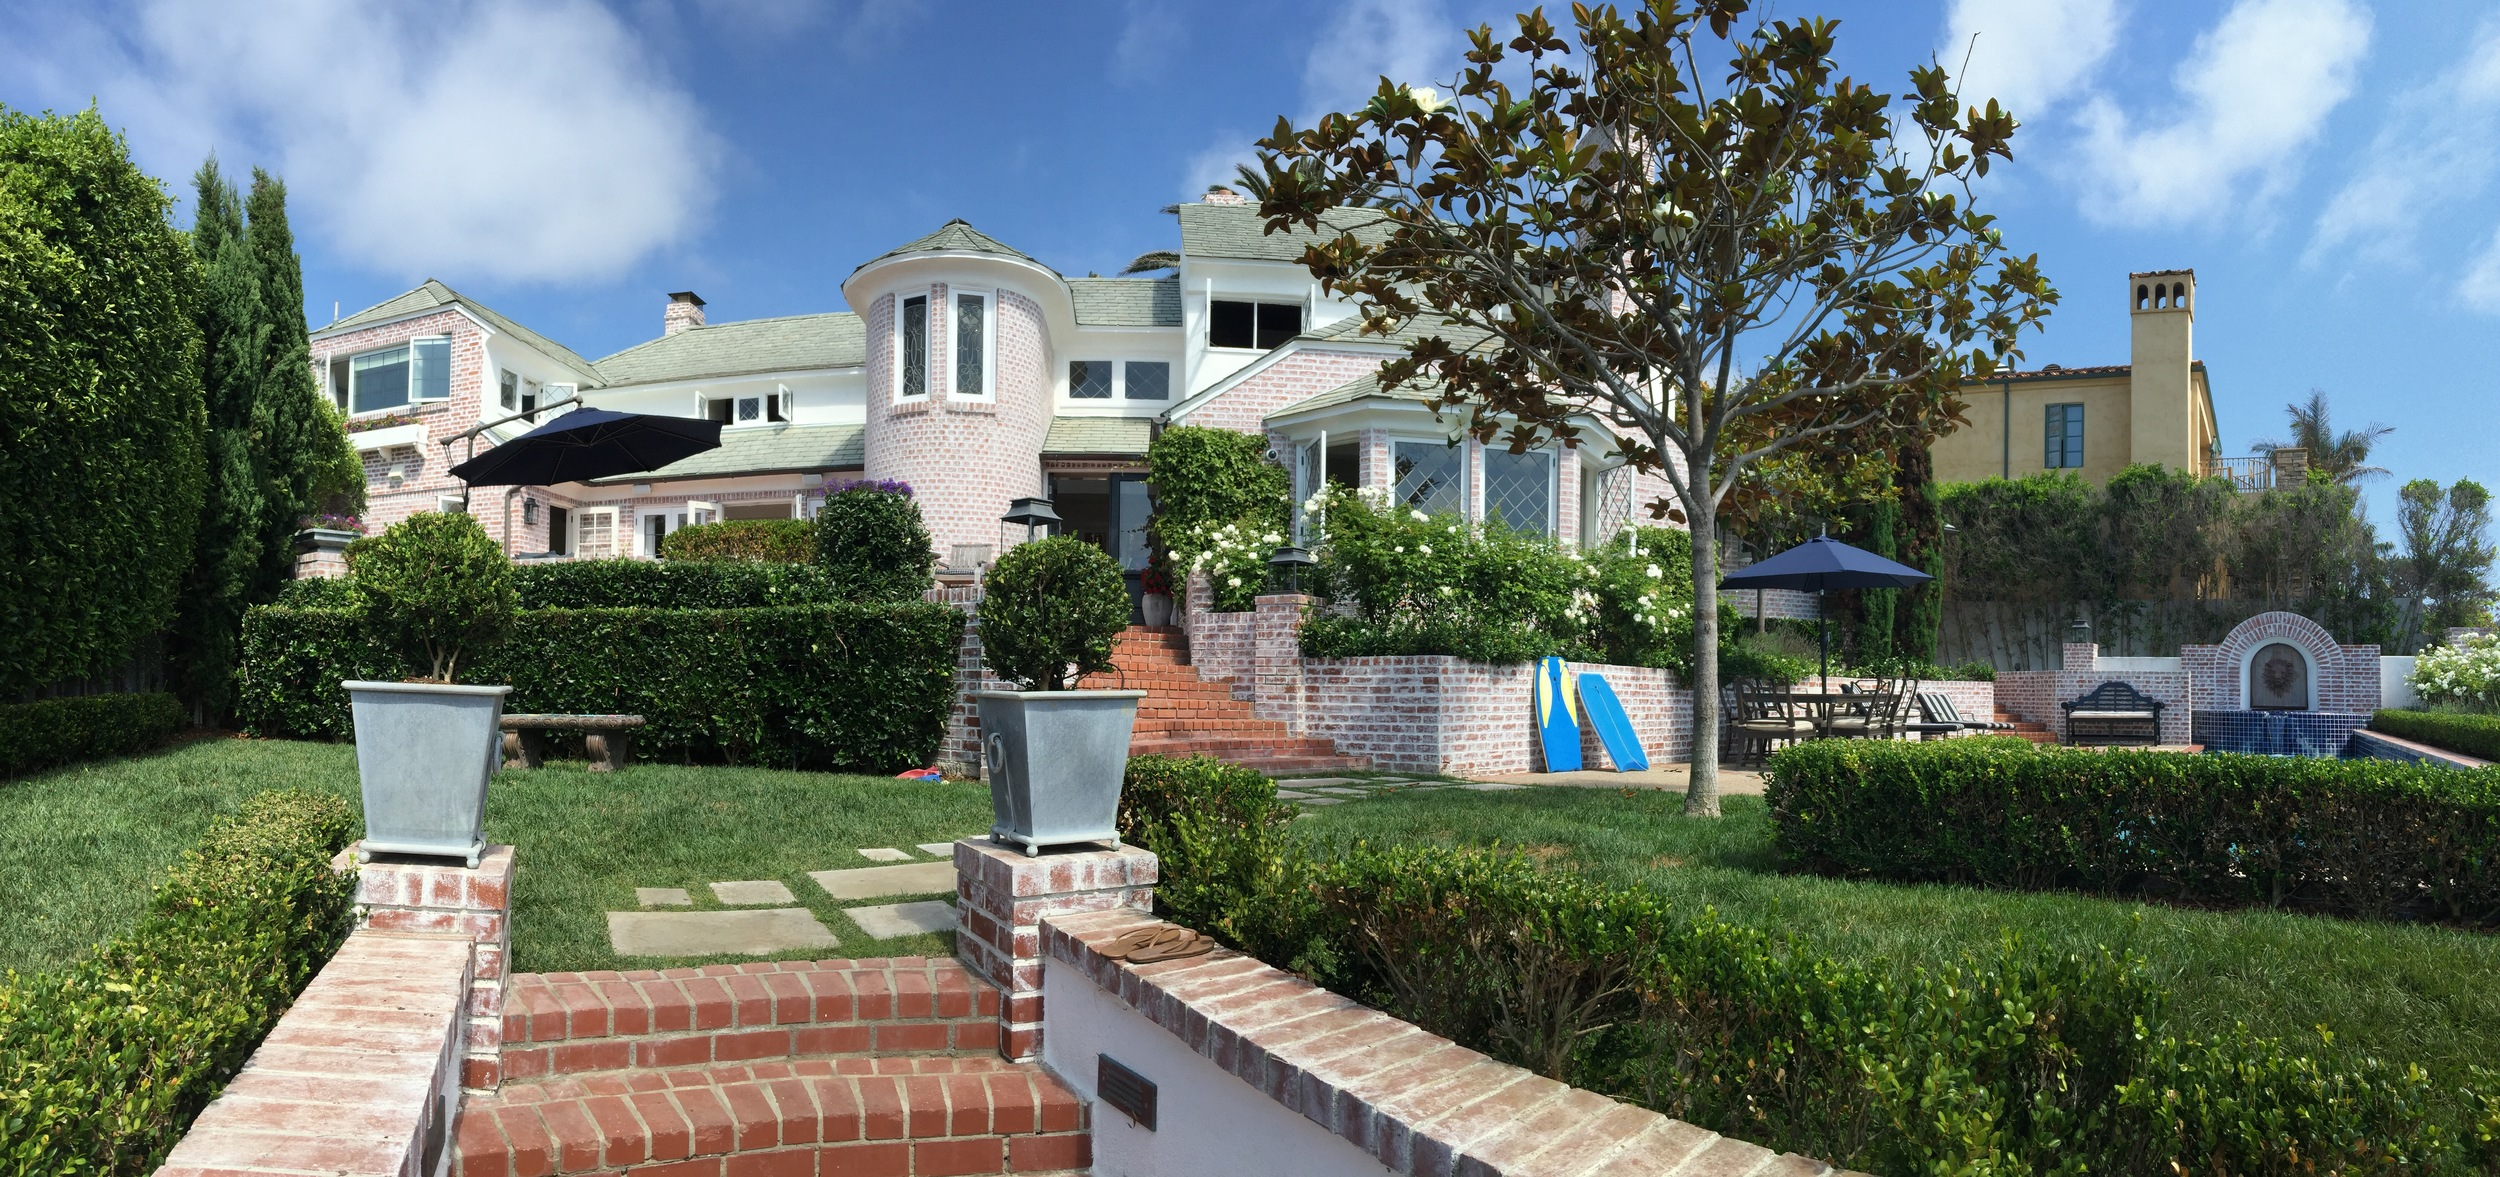 Just completed renovation in LaJolla, CA